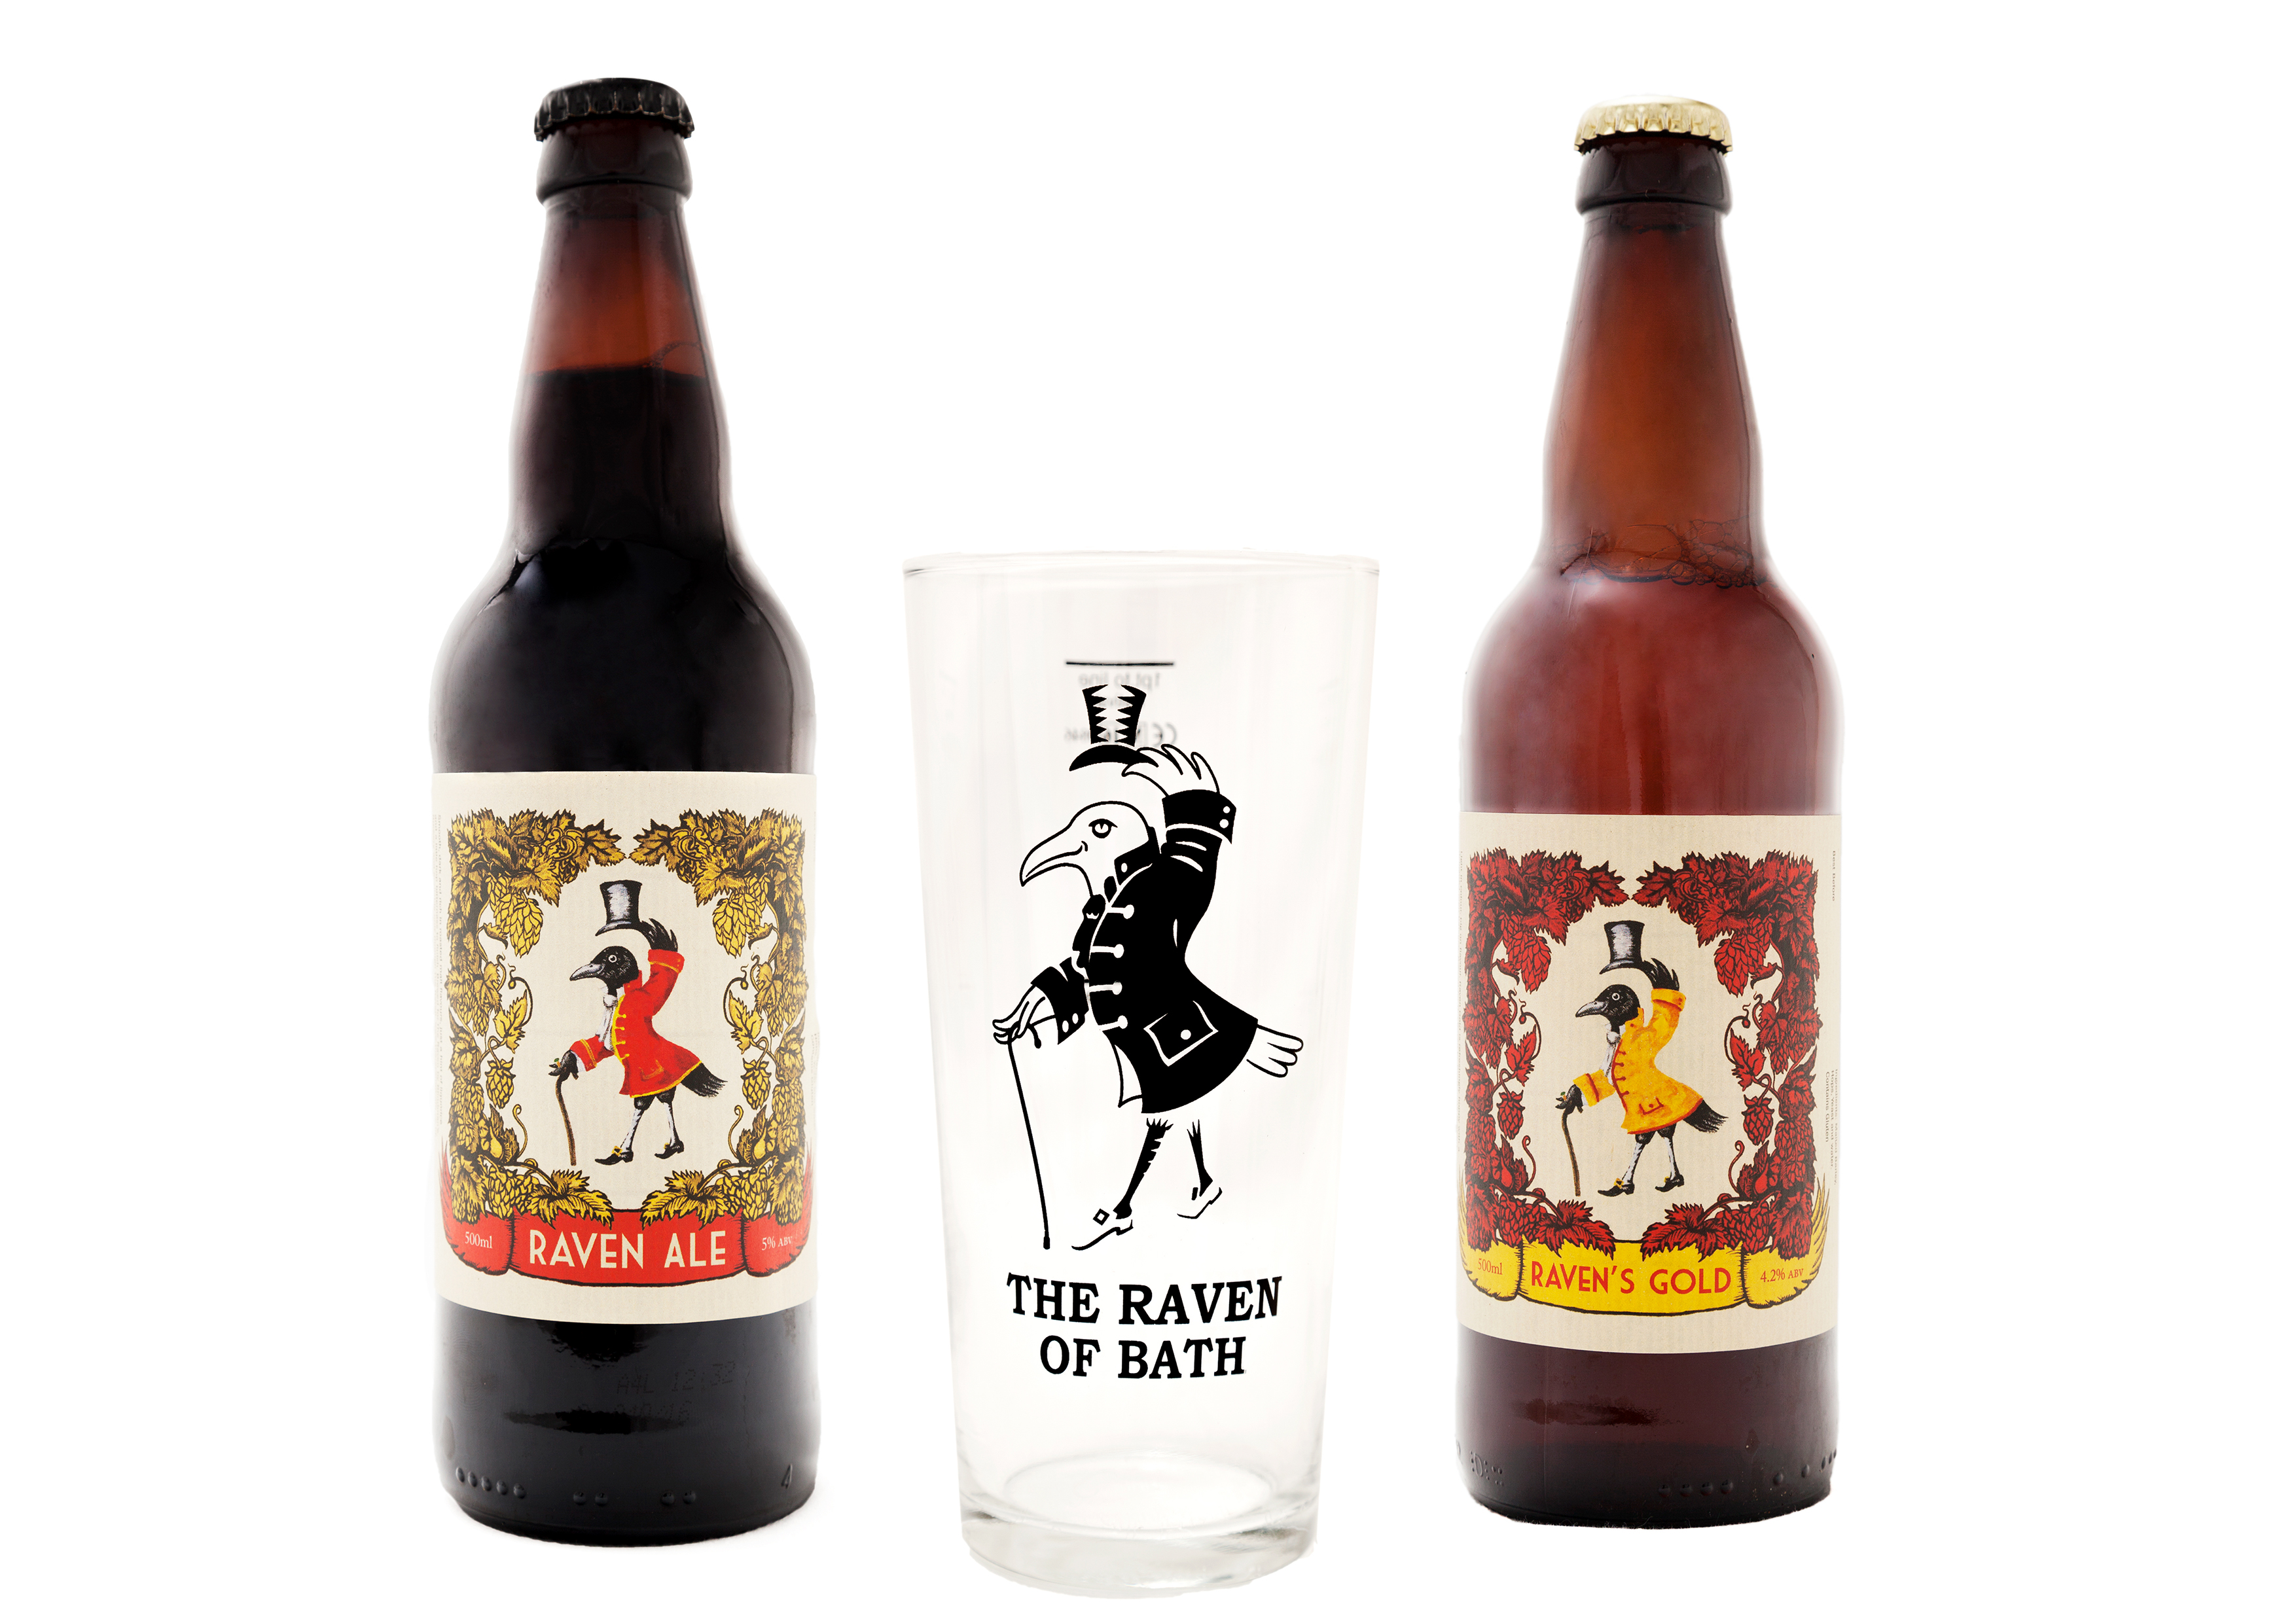 The Raven Ale & Raven's Gold Duo